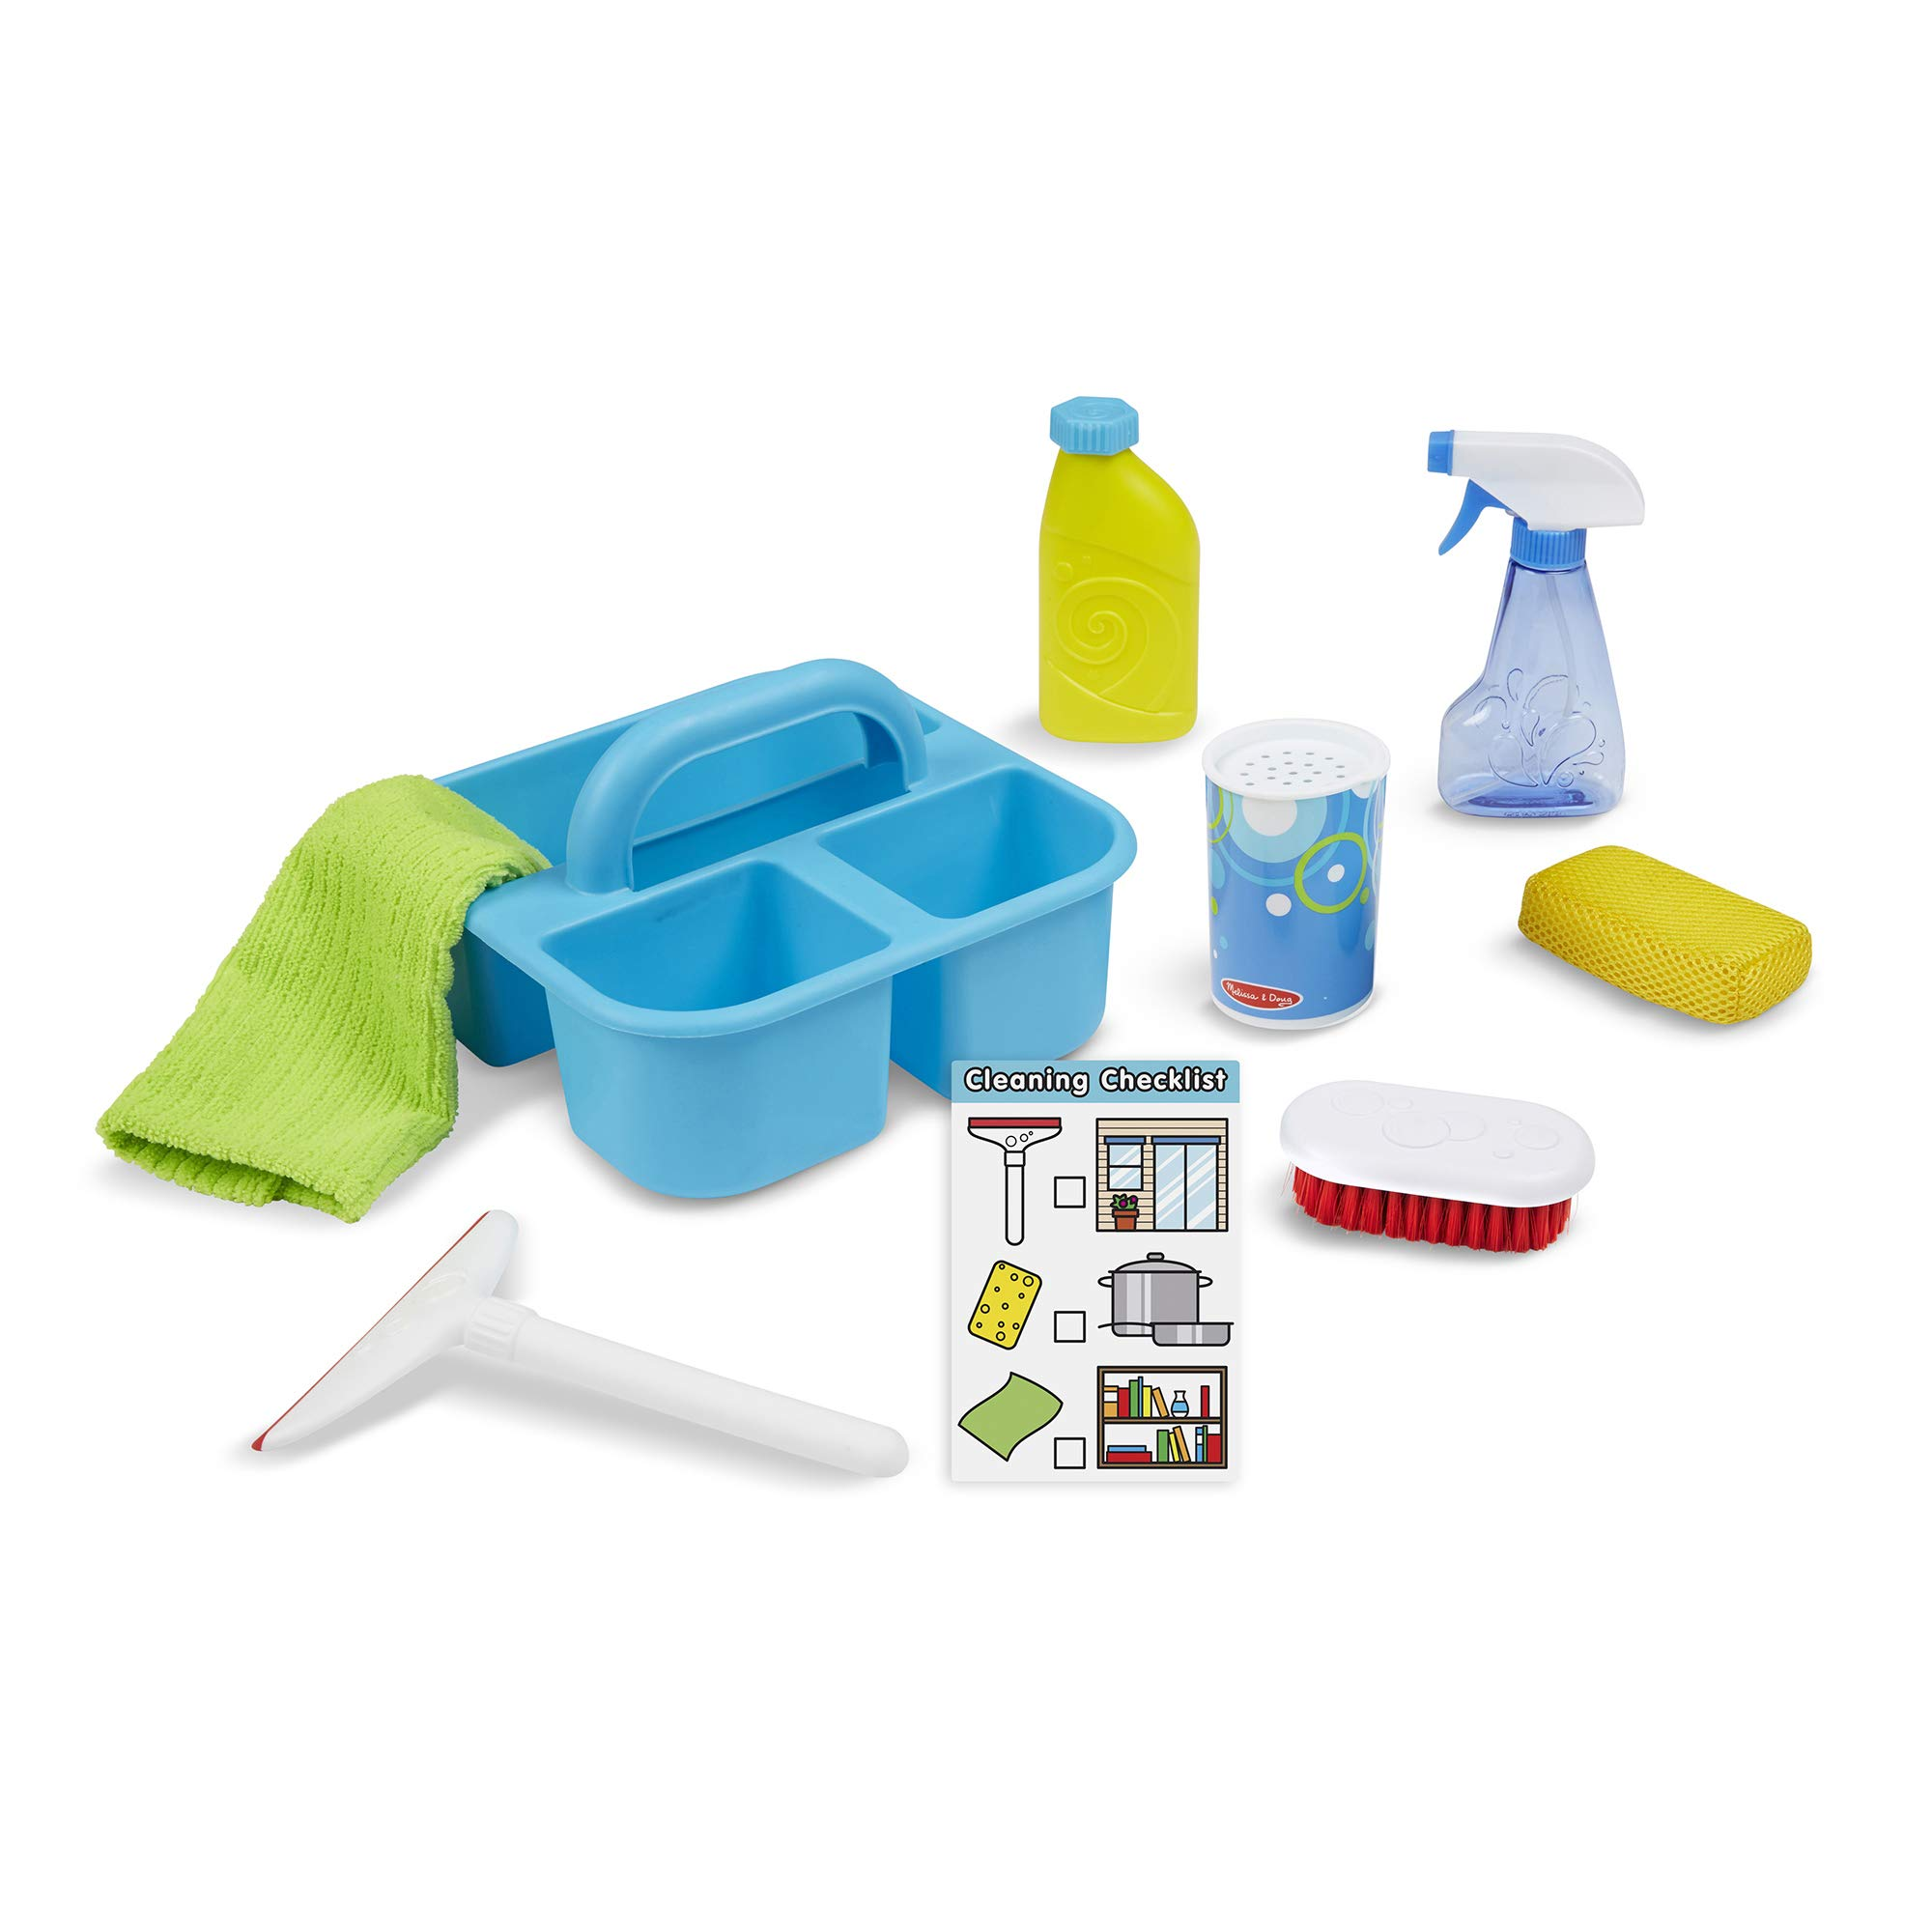 Lets Play House! Spray Squirt Squeegee & Play Set by Melissa & Doug